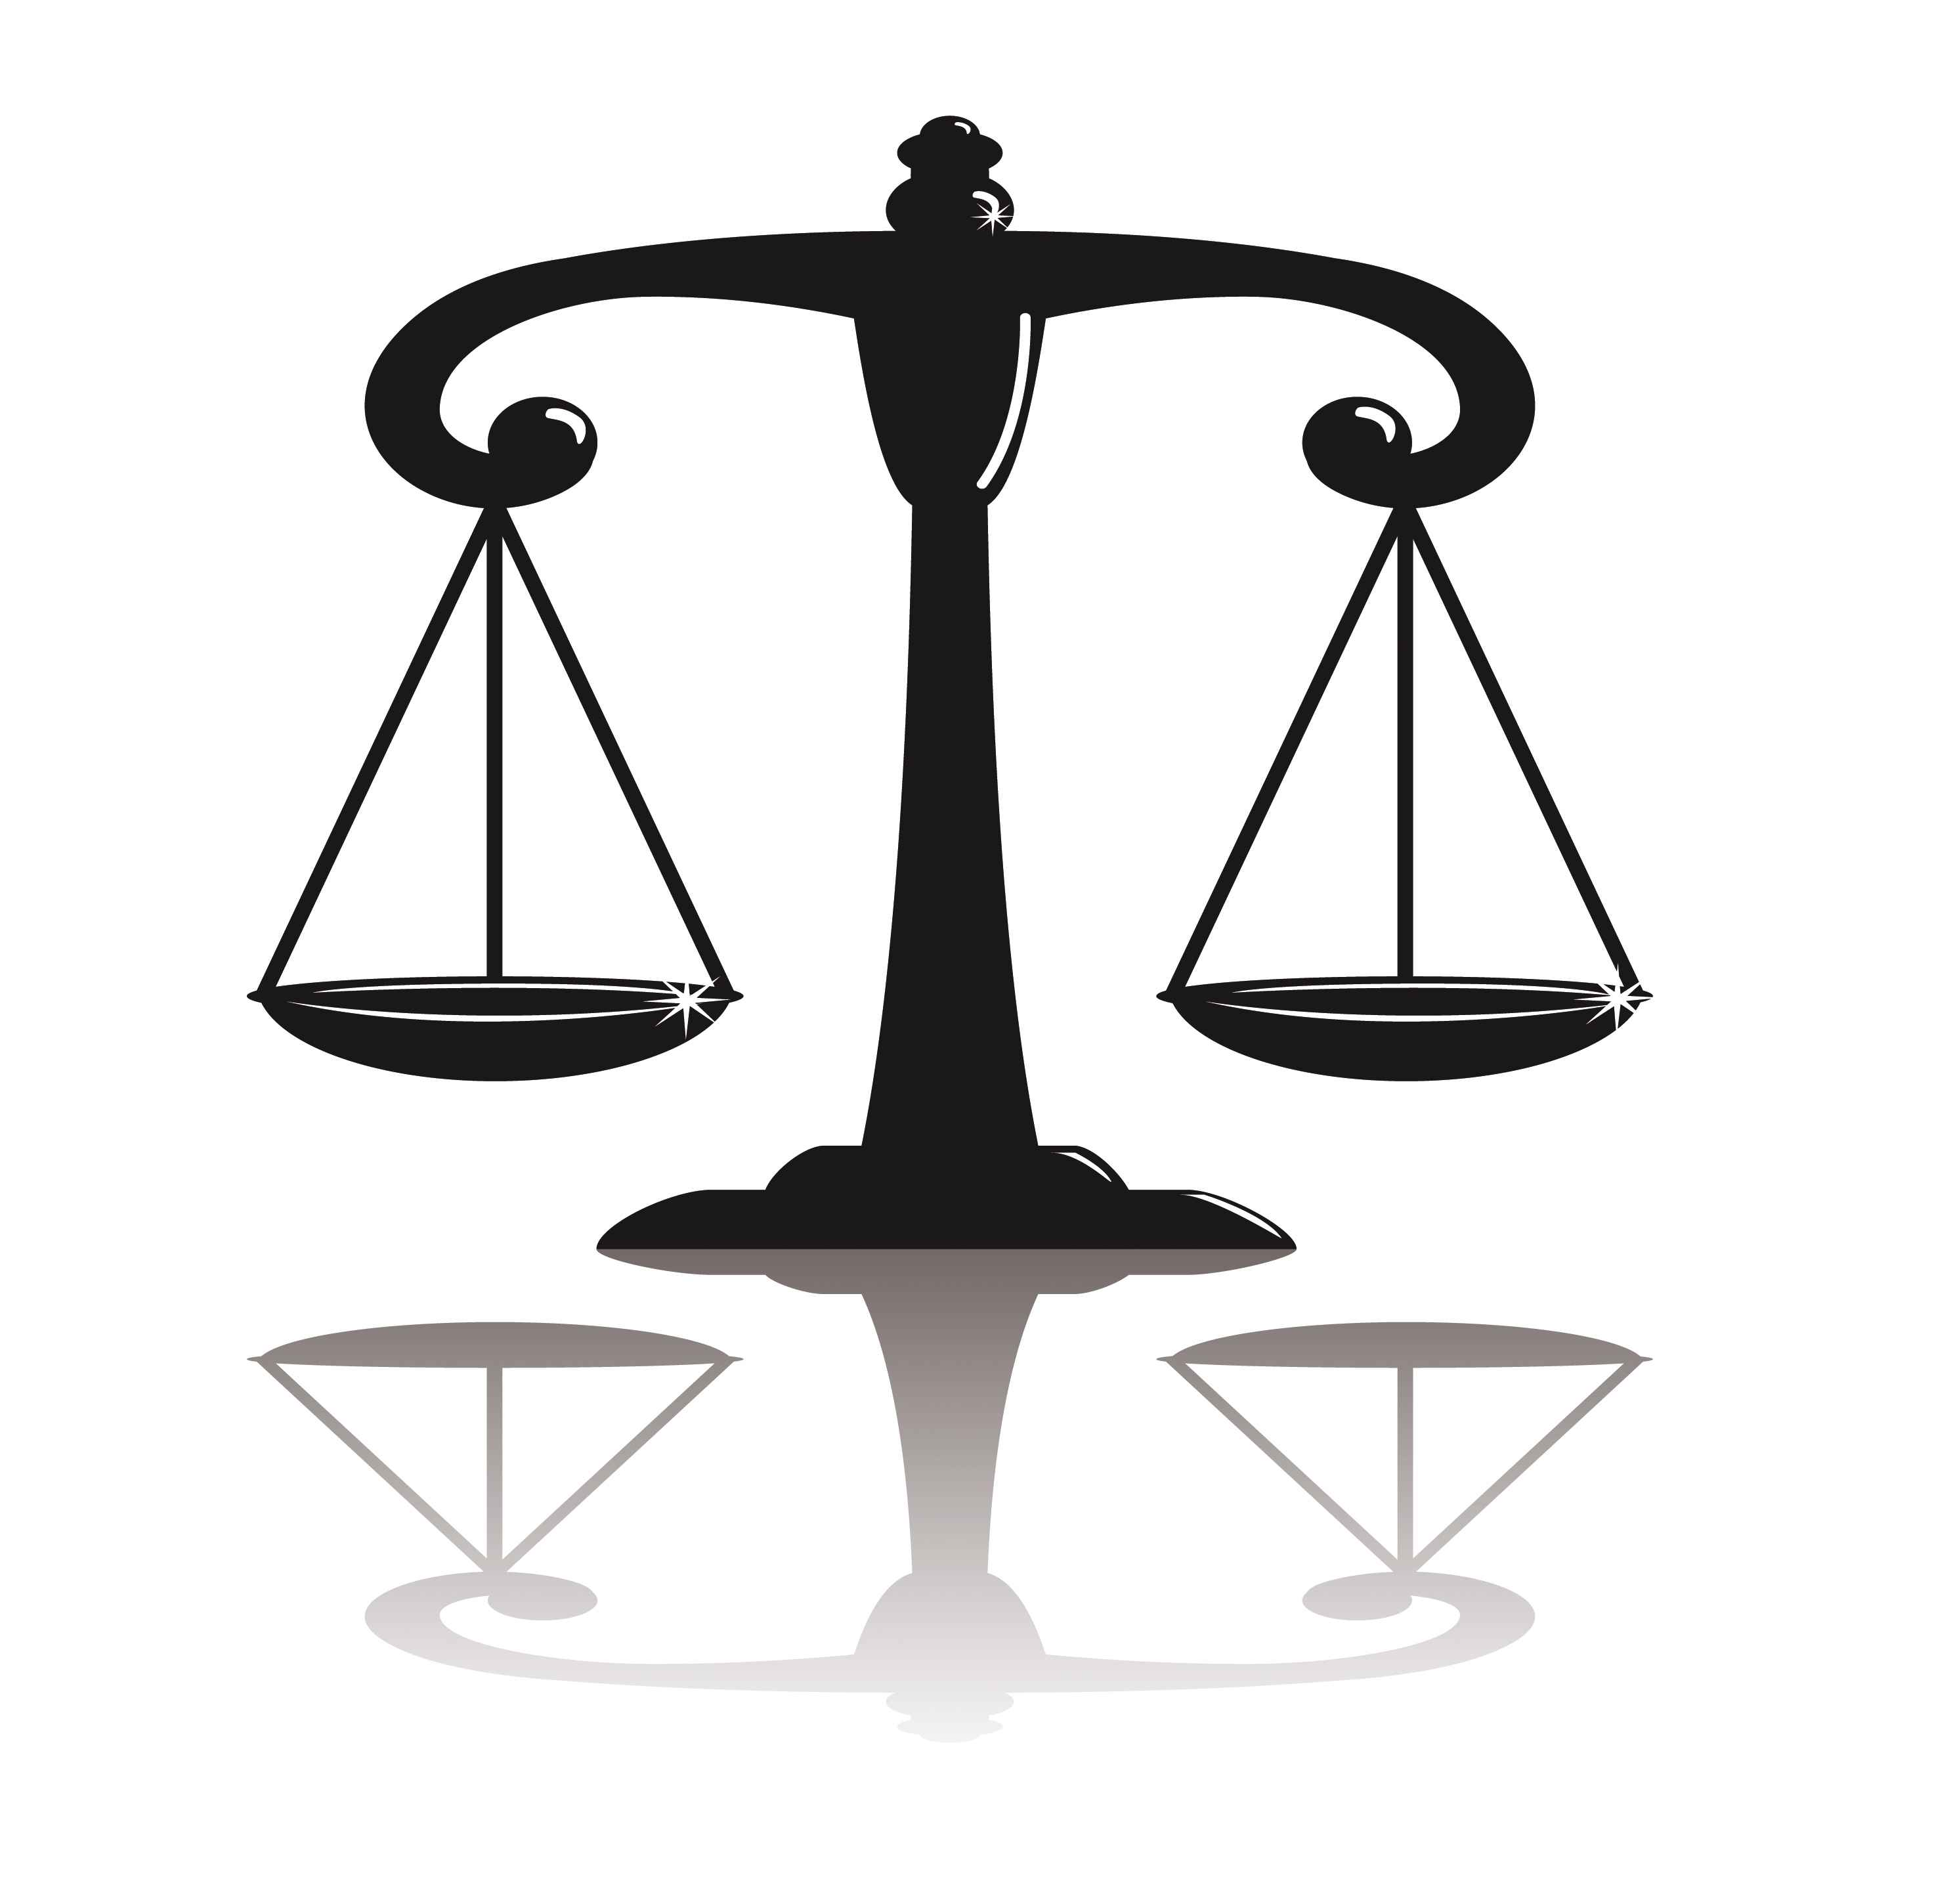 2946x2900 Scales Of Justice Animated Clipart Kid